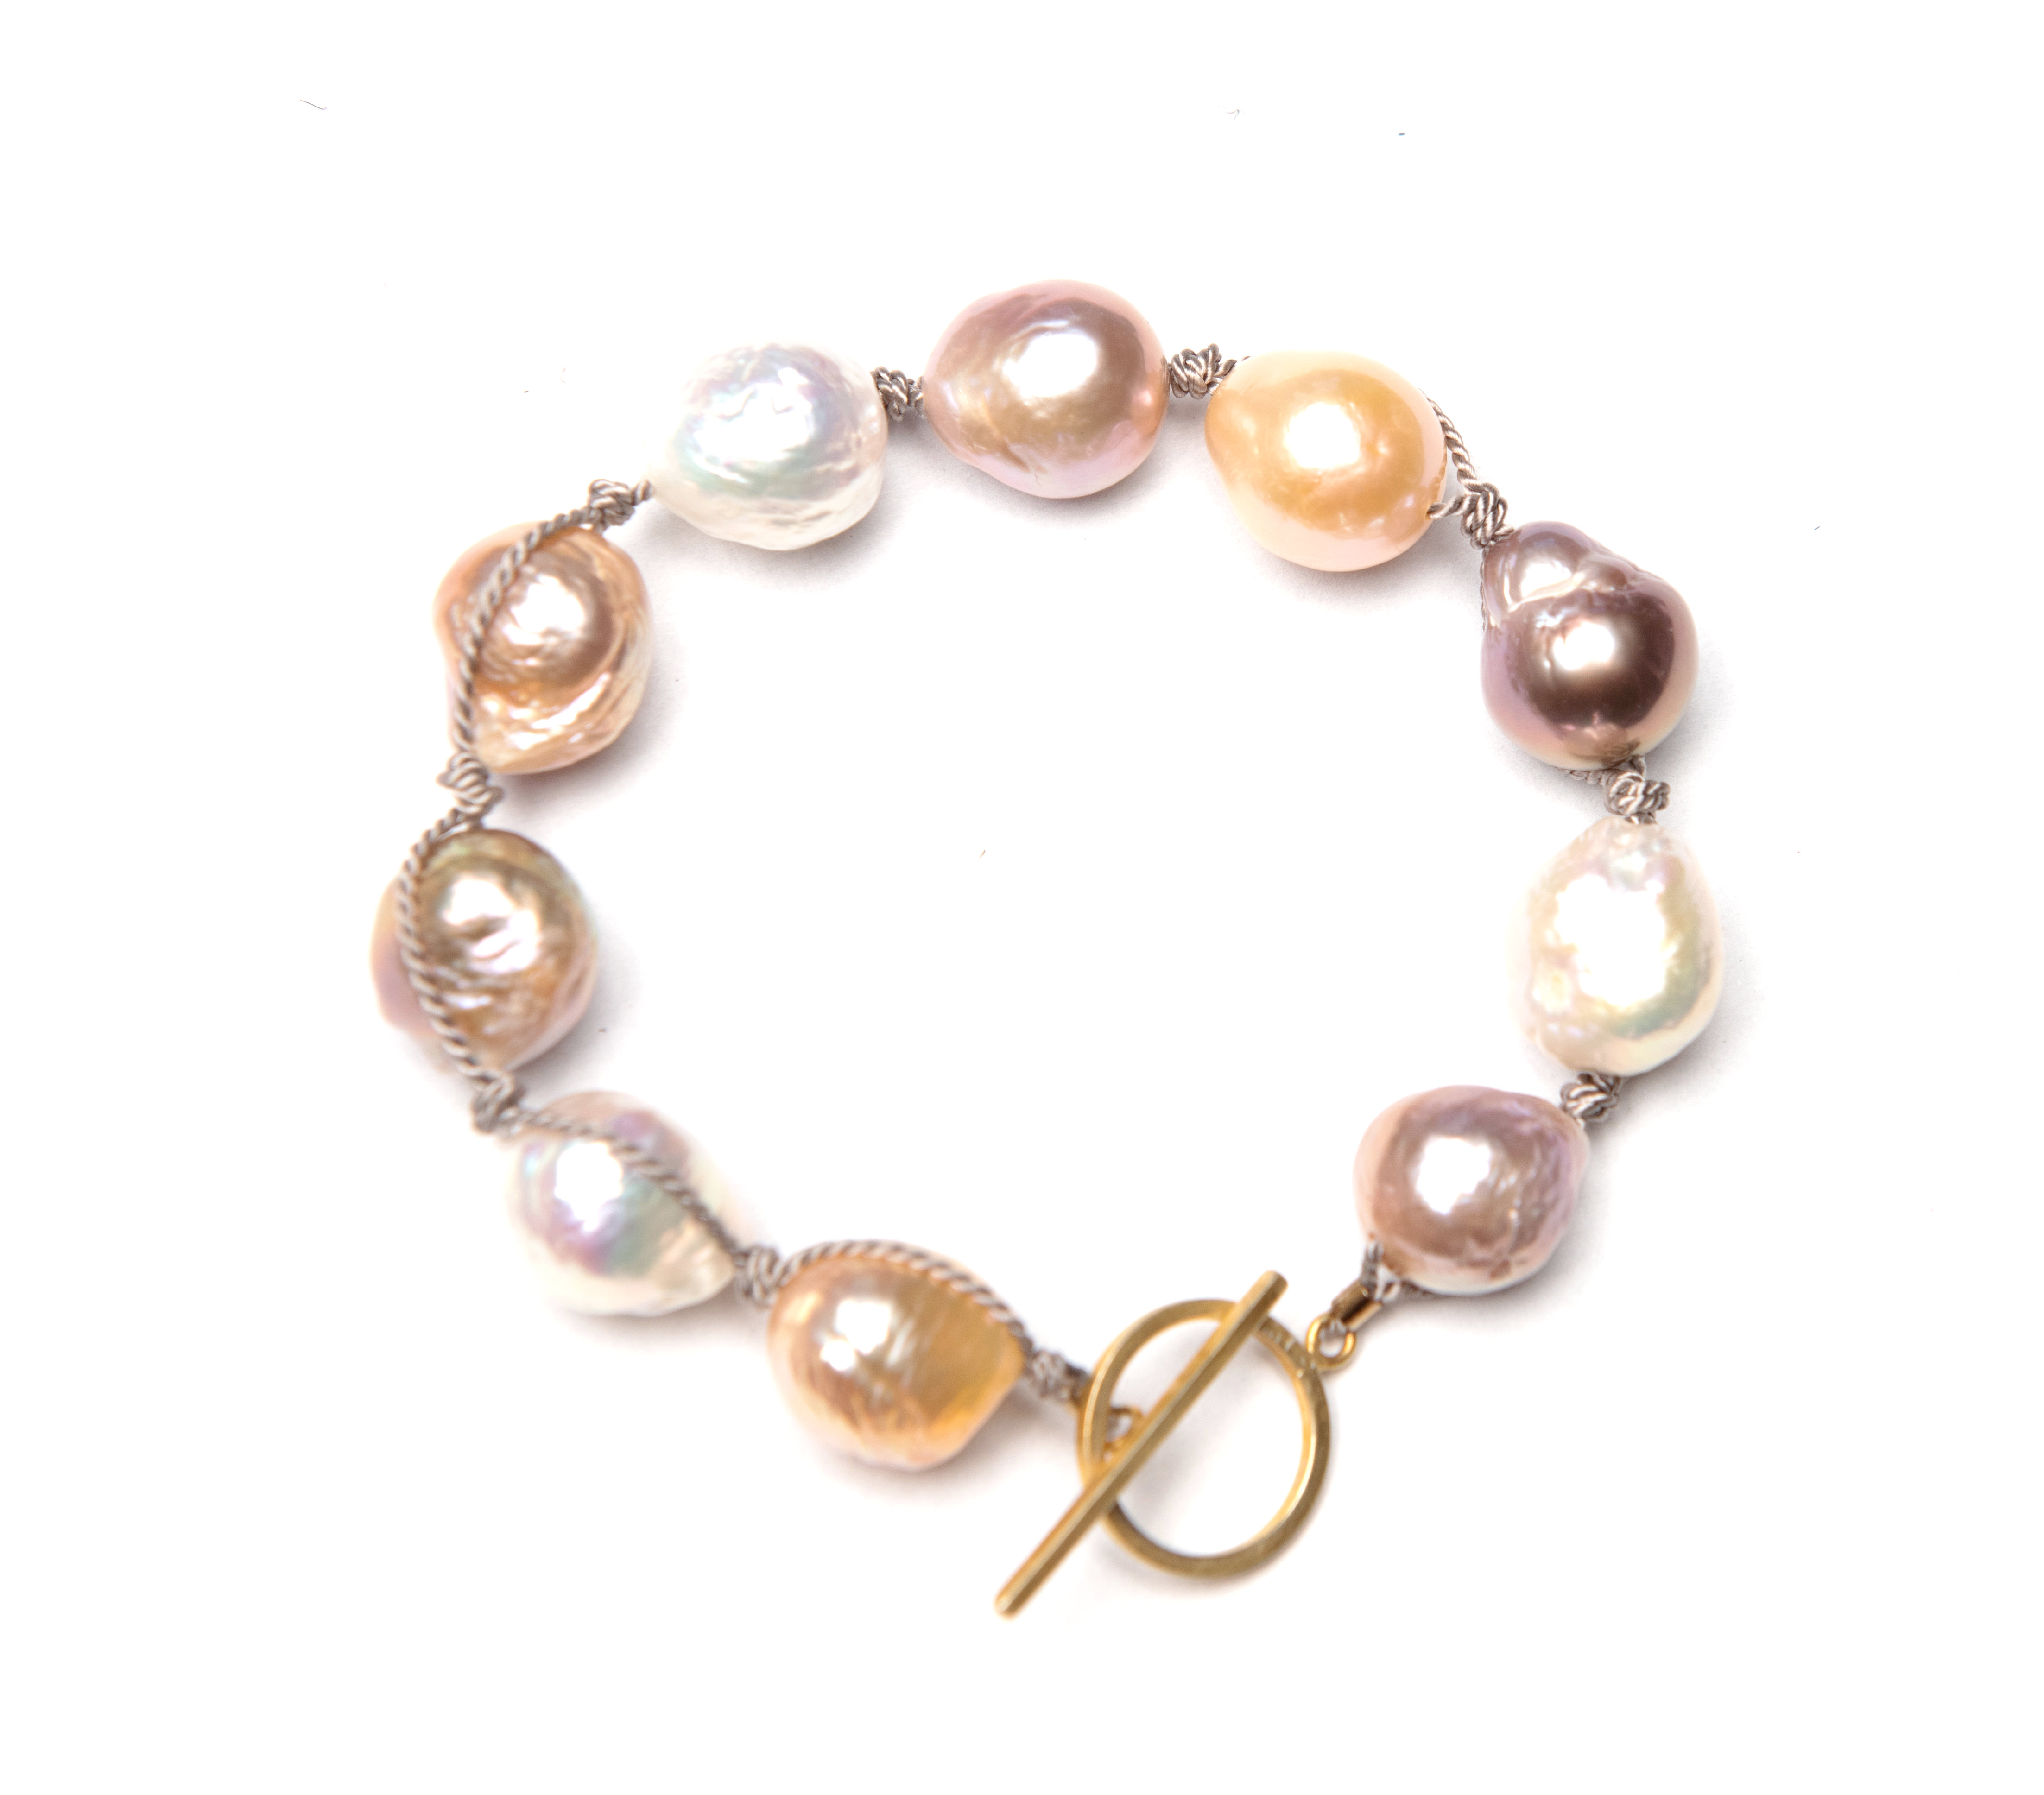 Baroque Pearl Bracelet Assorted Hues / 14k Gold Filled